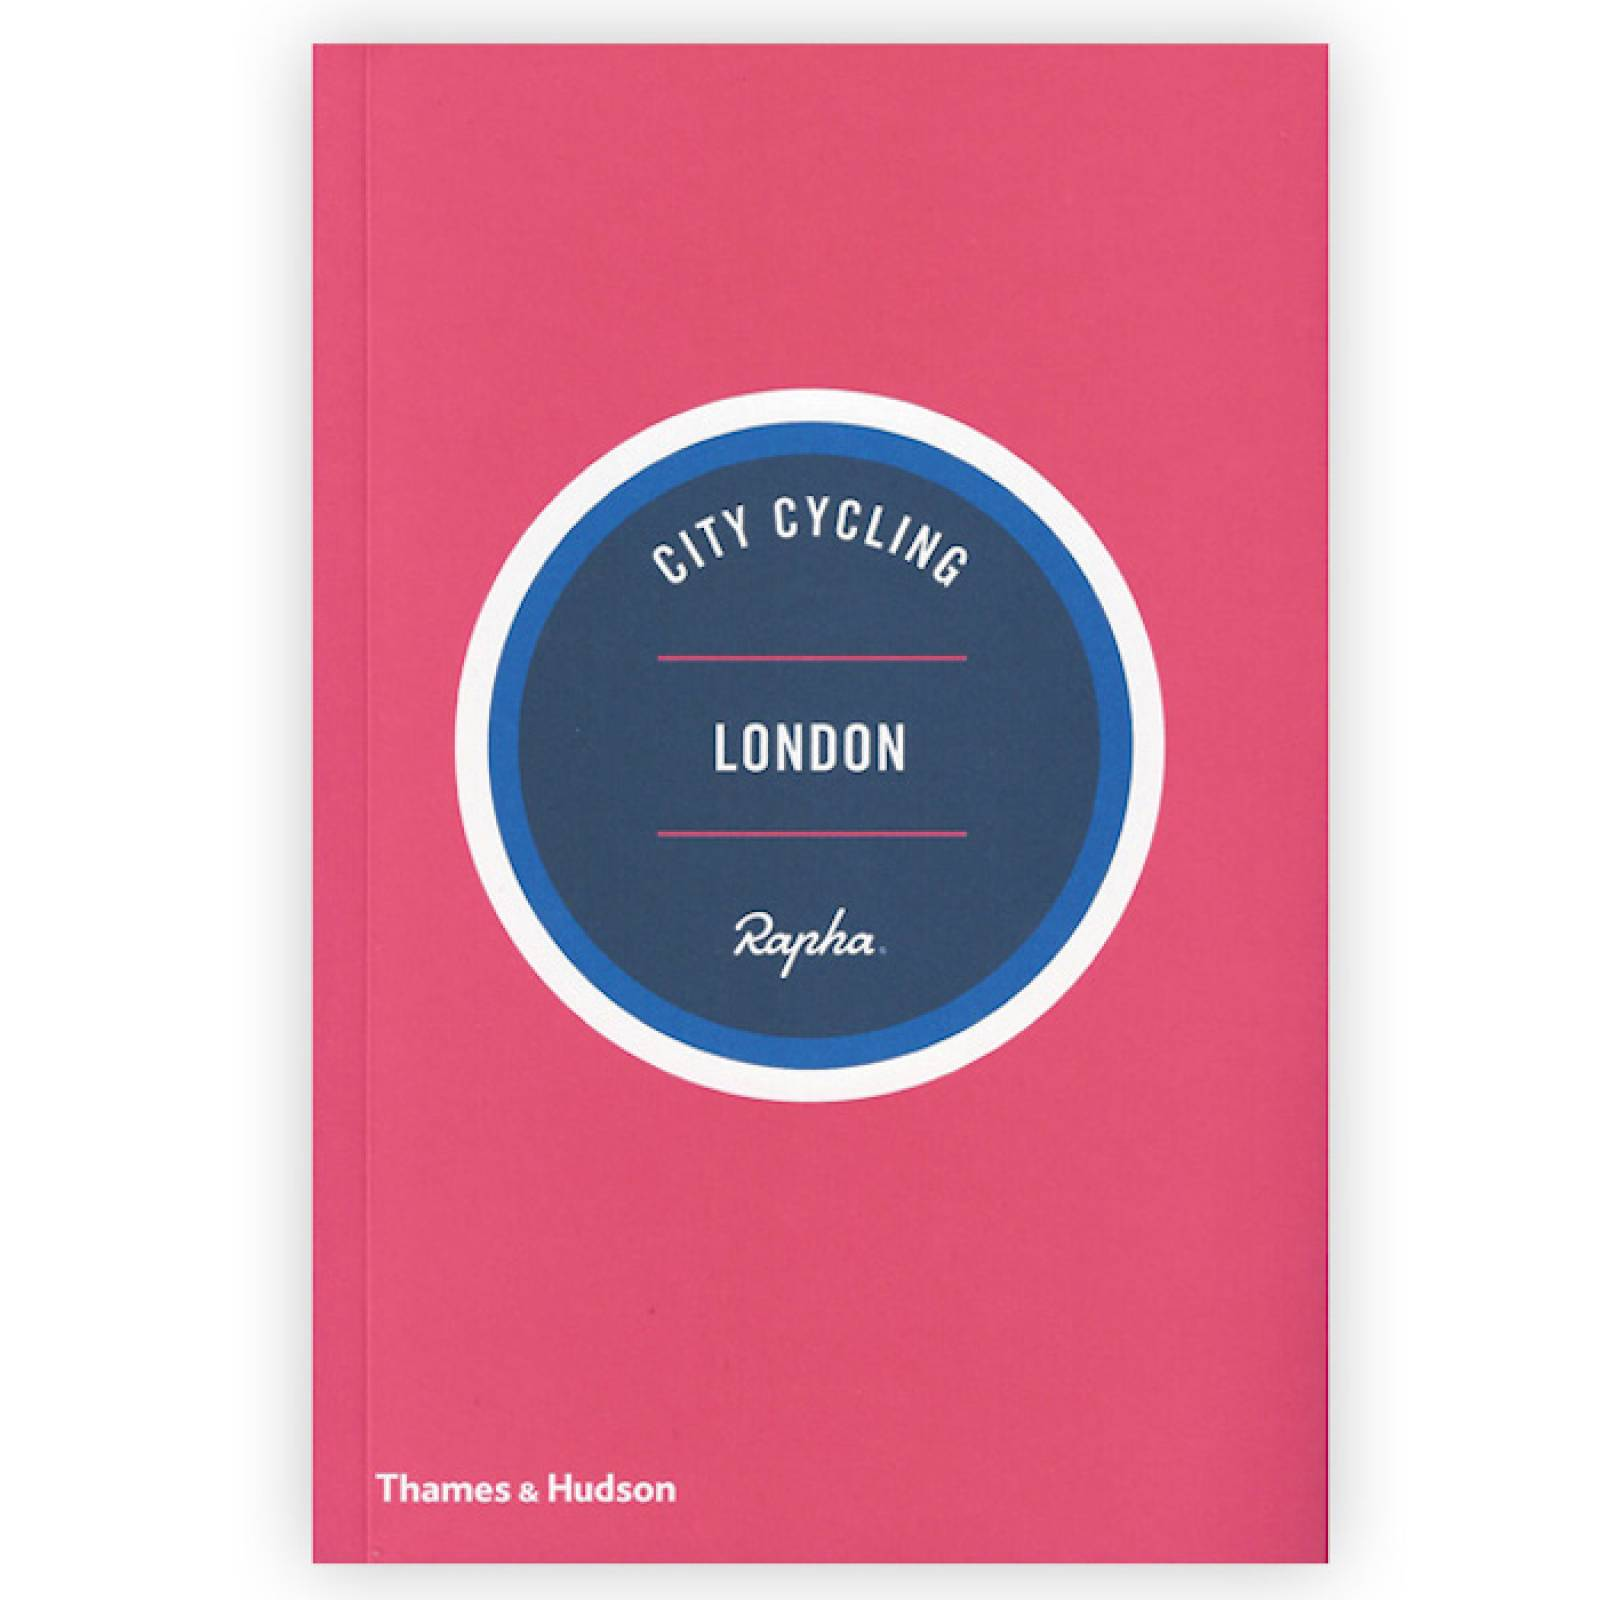 City Cycling London Paperback Book